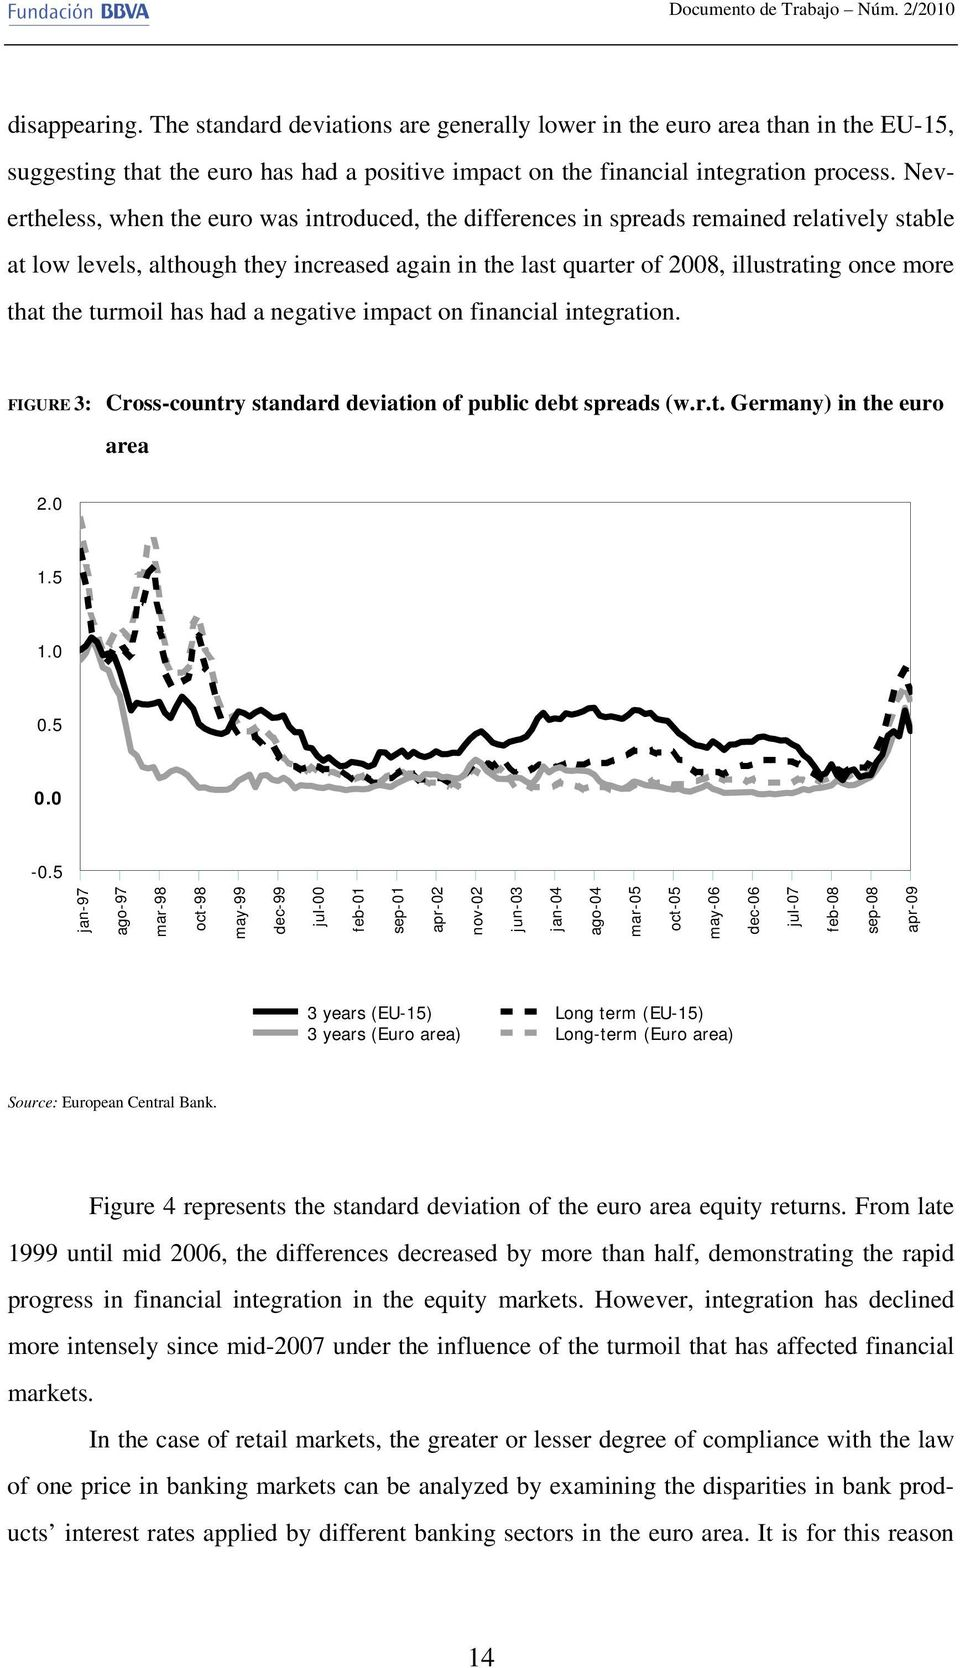 Nevertheless, when the euro was introduced, the differences in spreads remained relatively stable at low levels, although they increased again in the last quarter of 2008, illustrating once more that